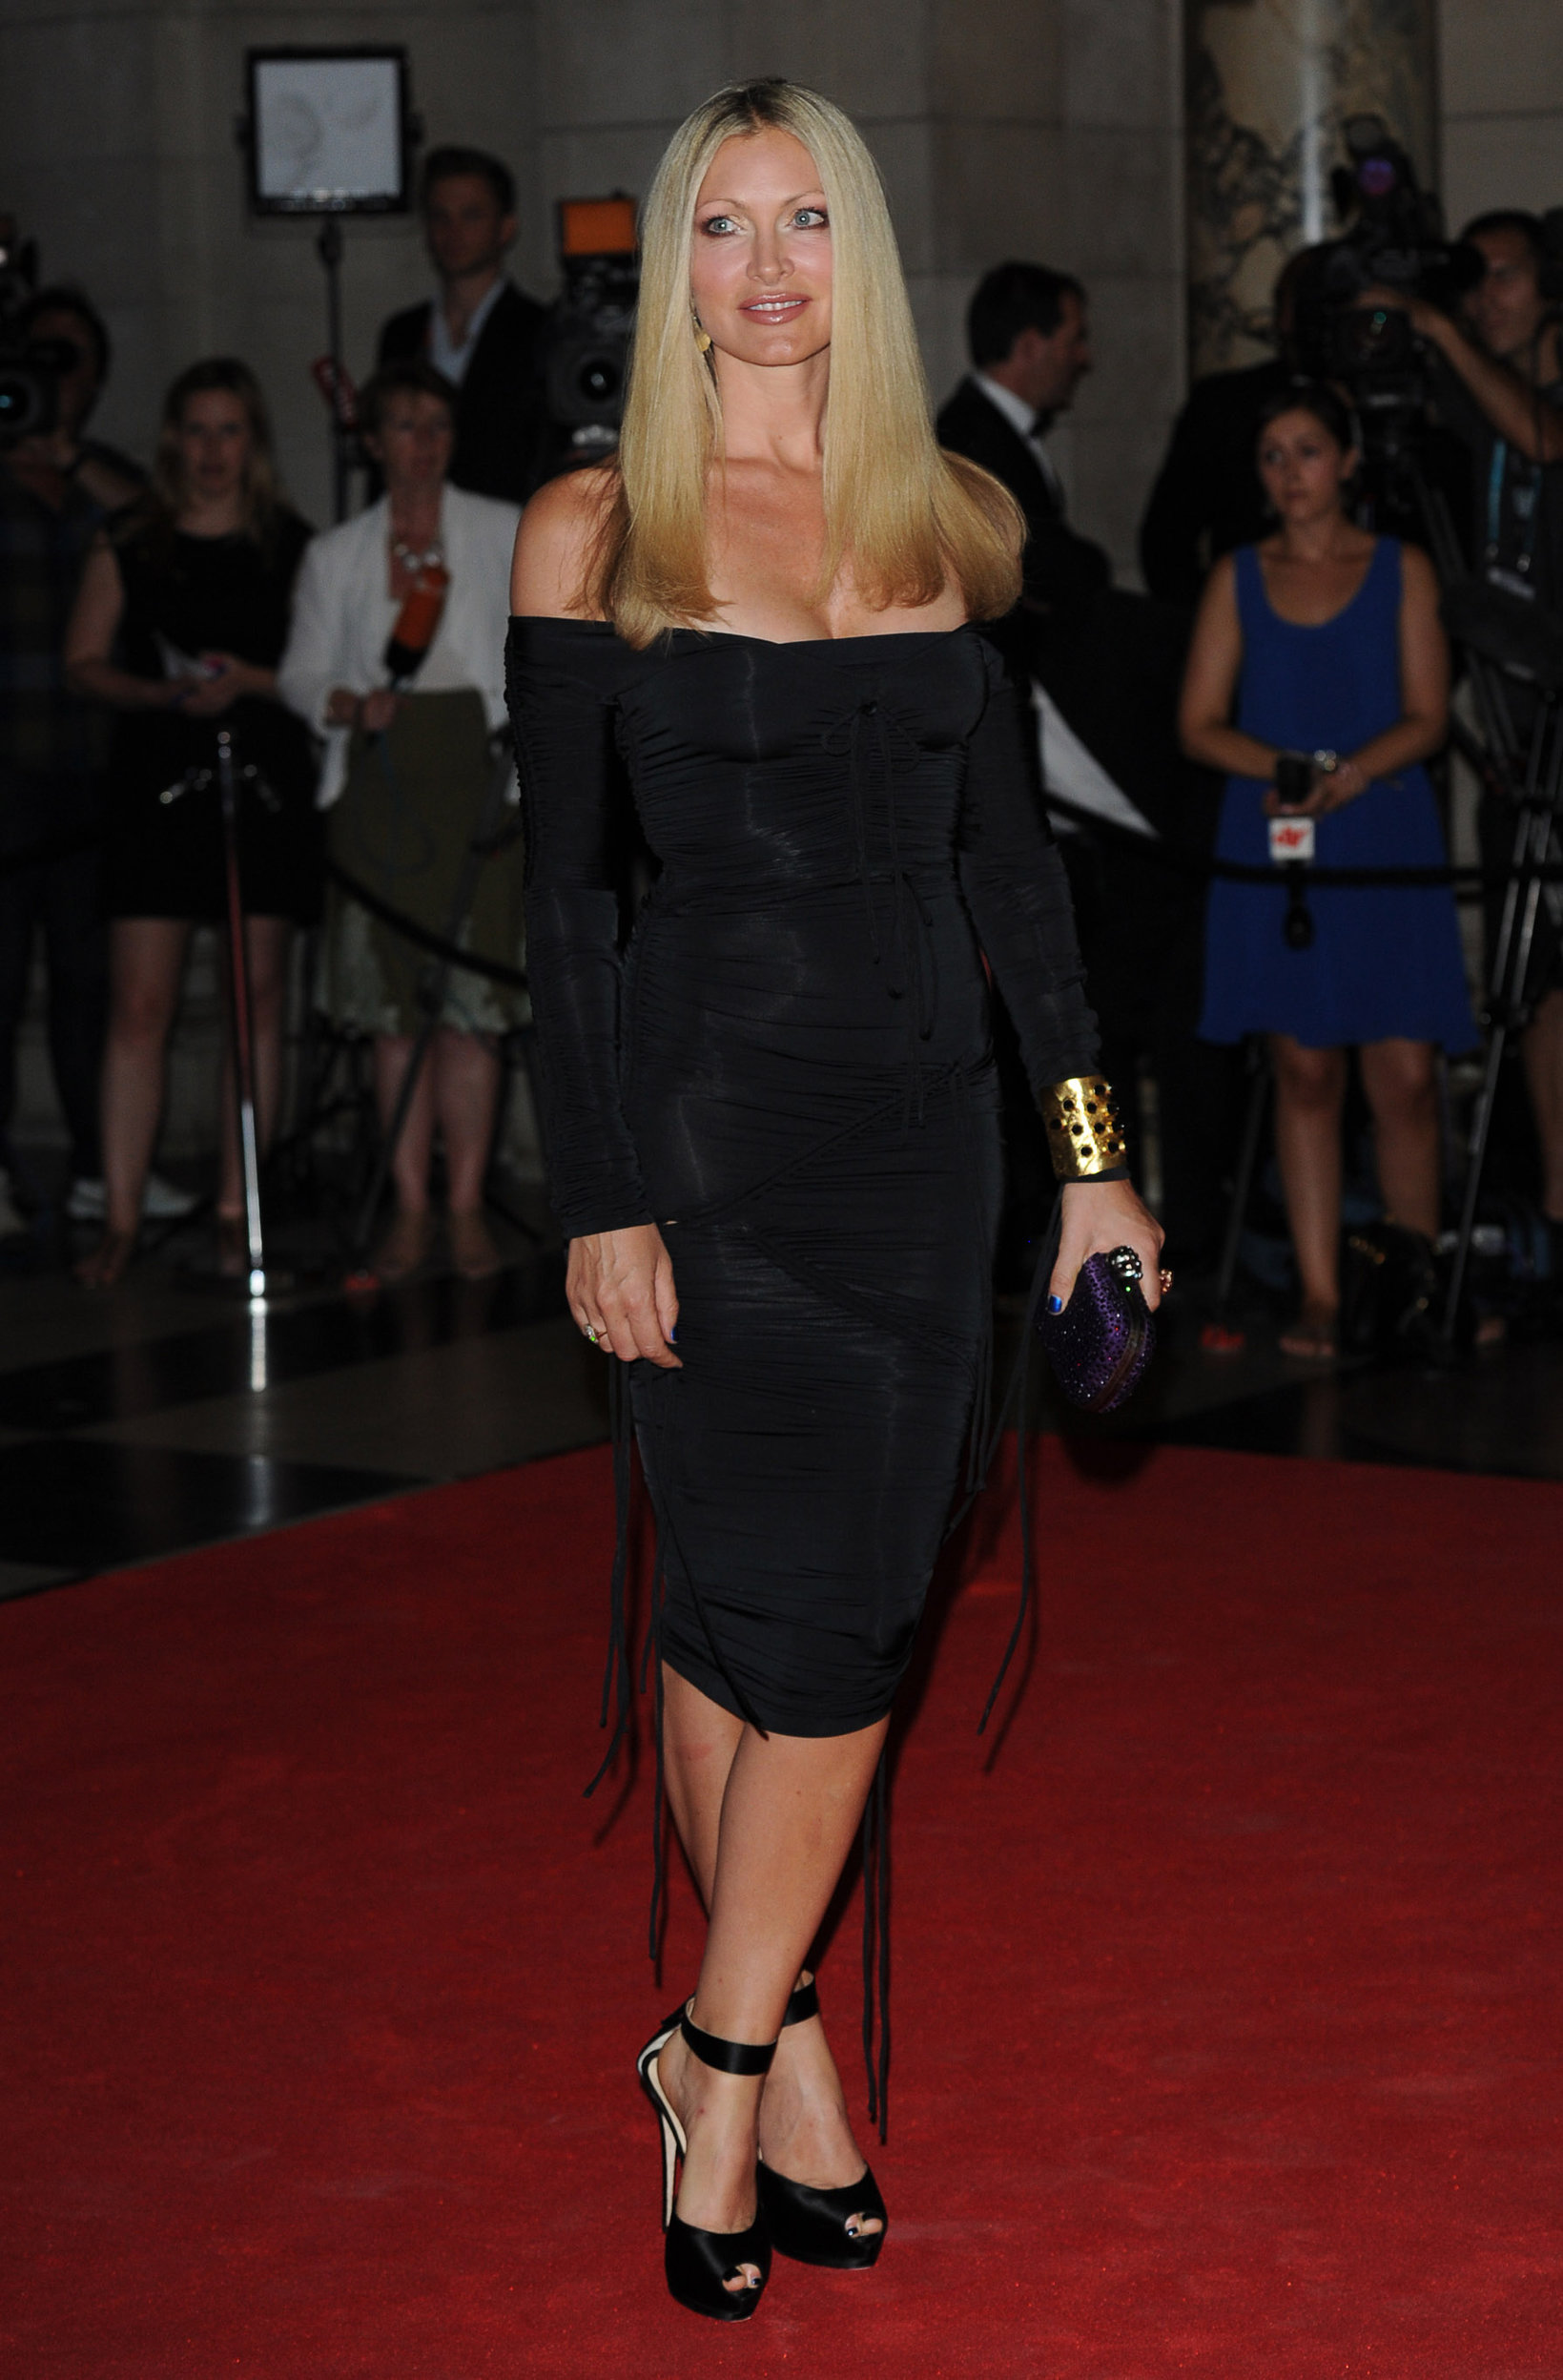 Caprice Bourret in a black dress